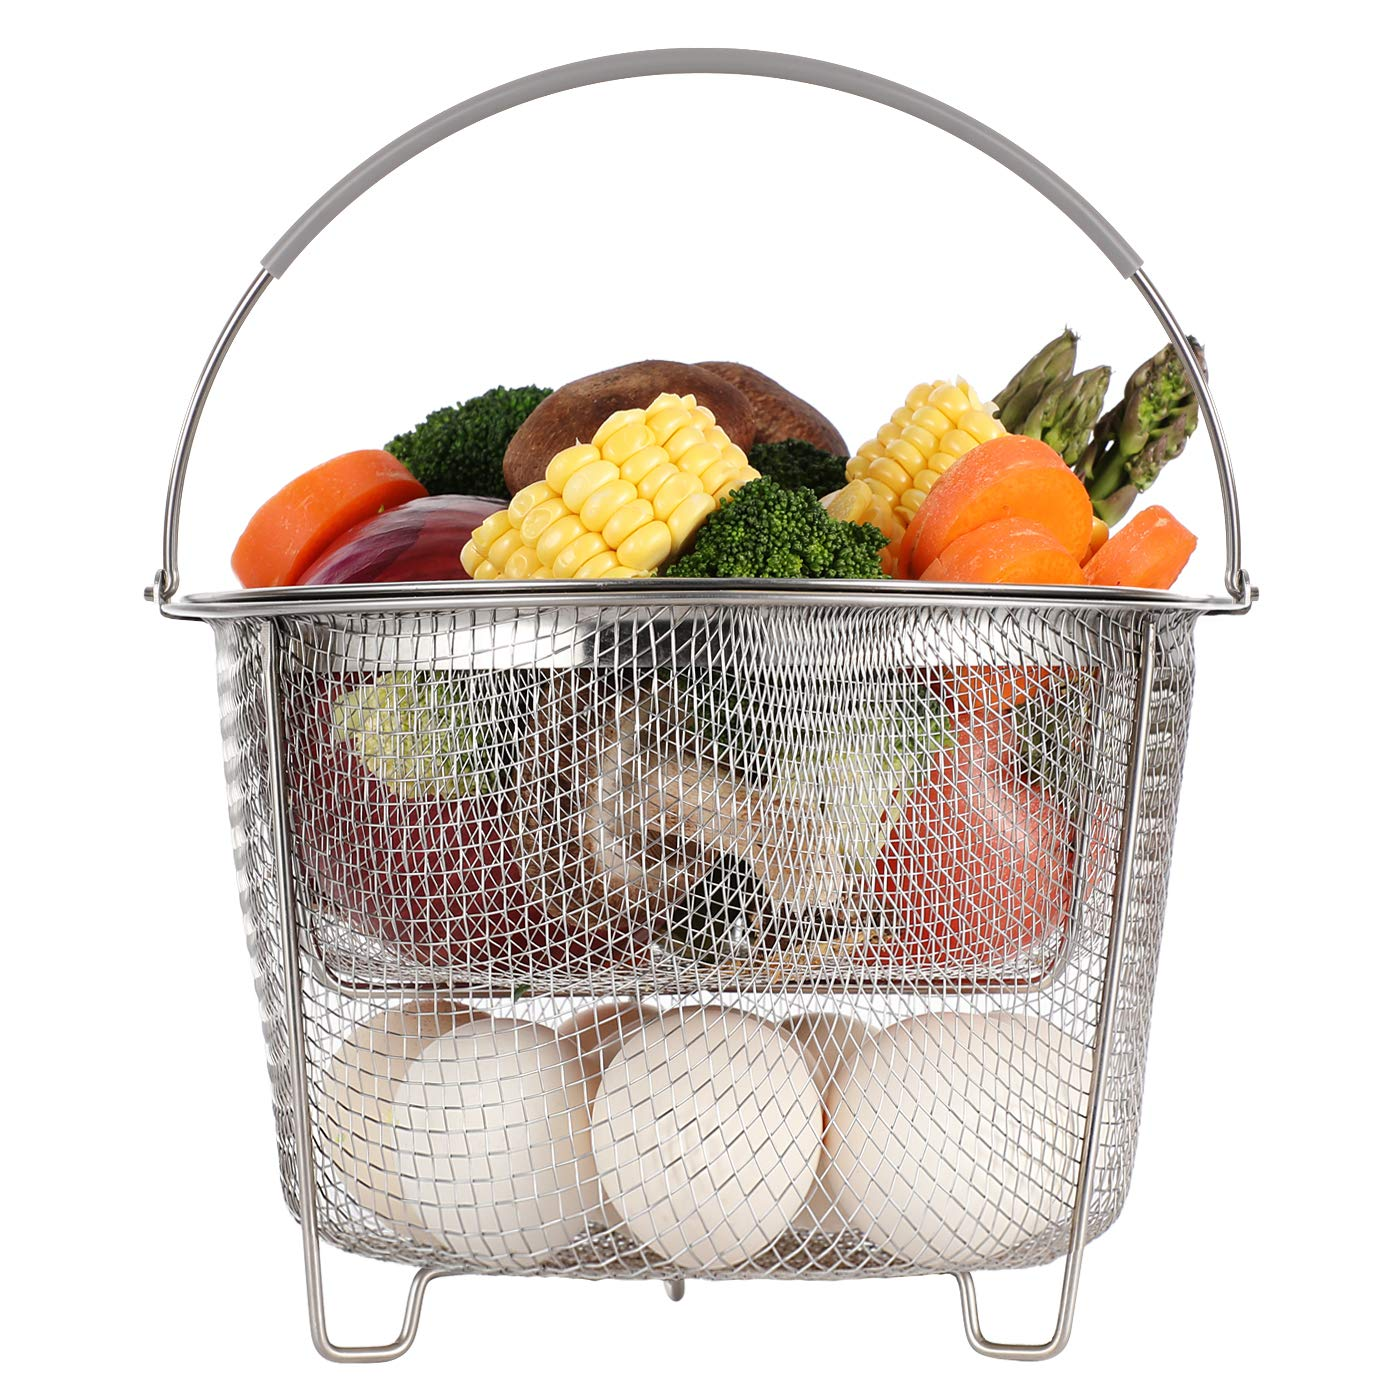 Aozita Steamer Basket for Instant Pot Accessories 6 qt or 8 quart - 2 Tier Stackable 18/8 Stainless Steel Mesh Strainer Basket - Silicone Handle - Vegetable Steamer Insert, Egg Basket, Pasta Strainer by Aozita